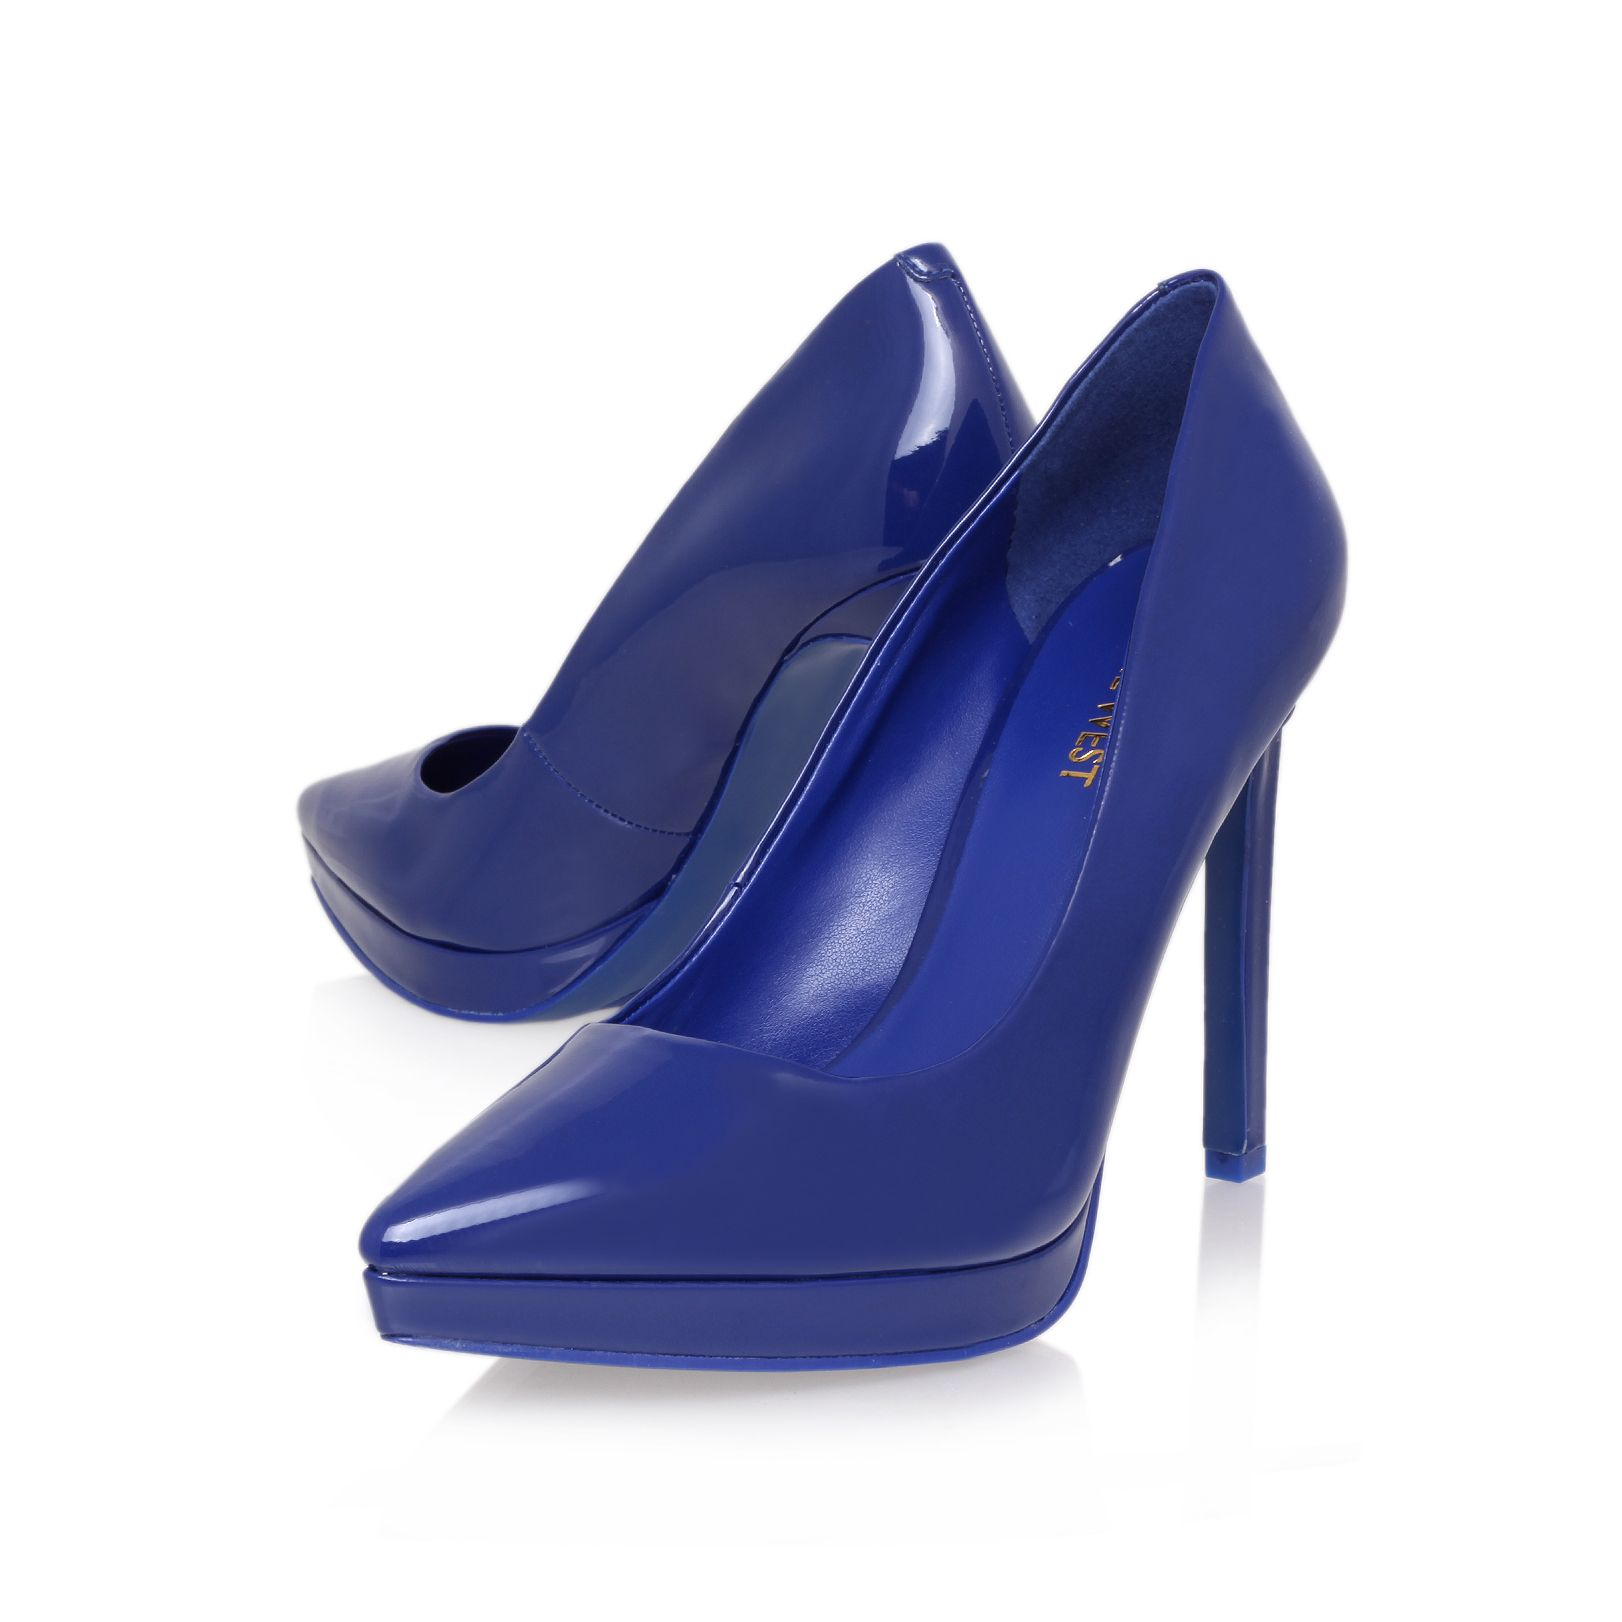 Violet3 high heel court shoes